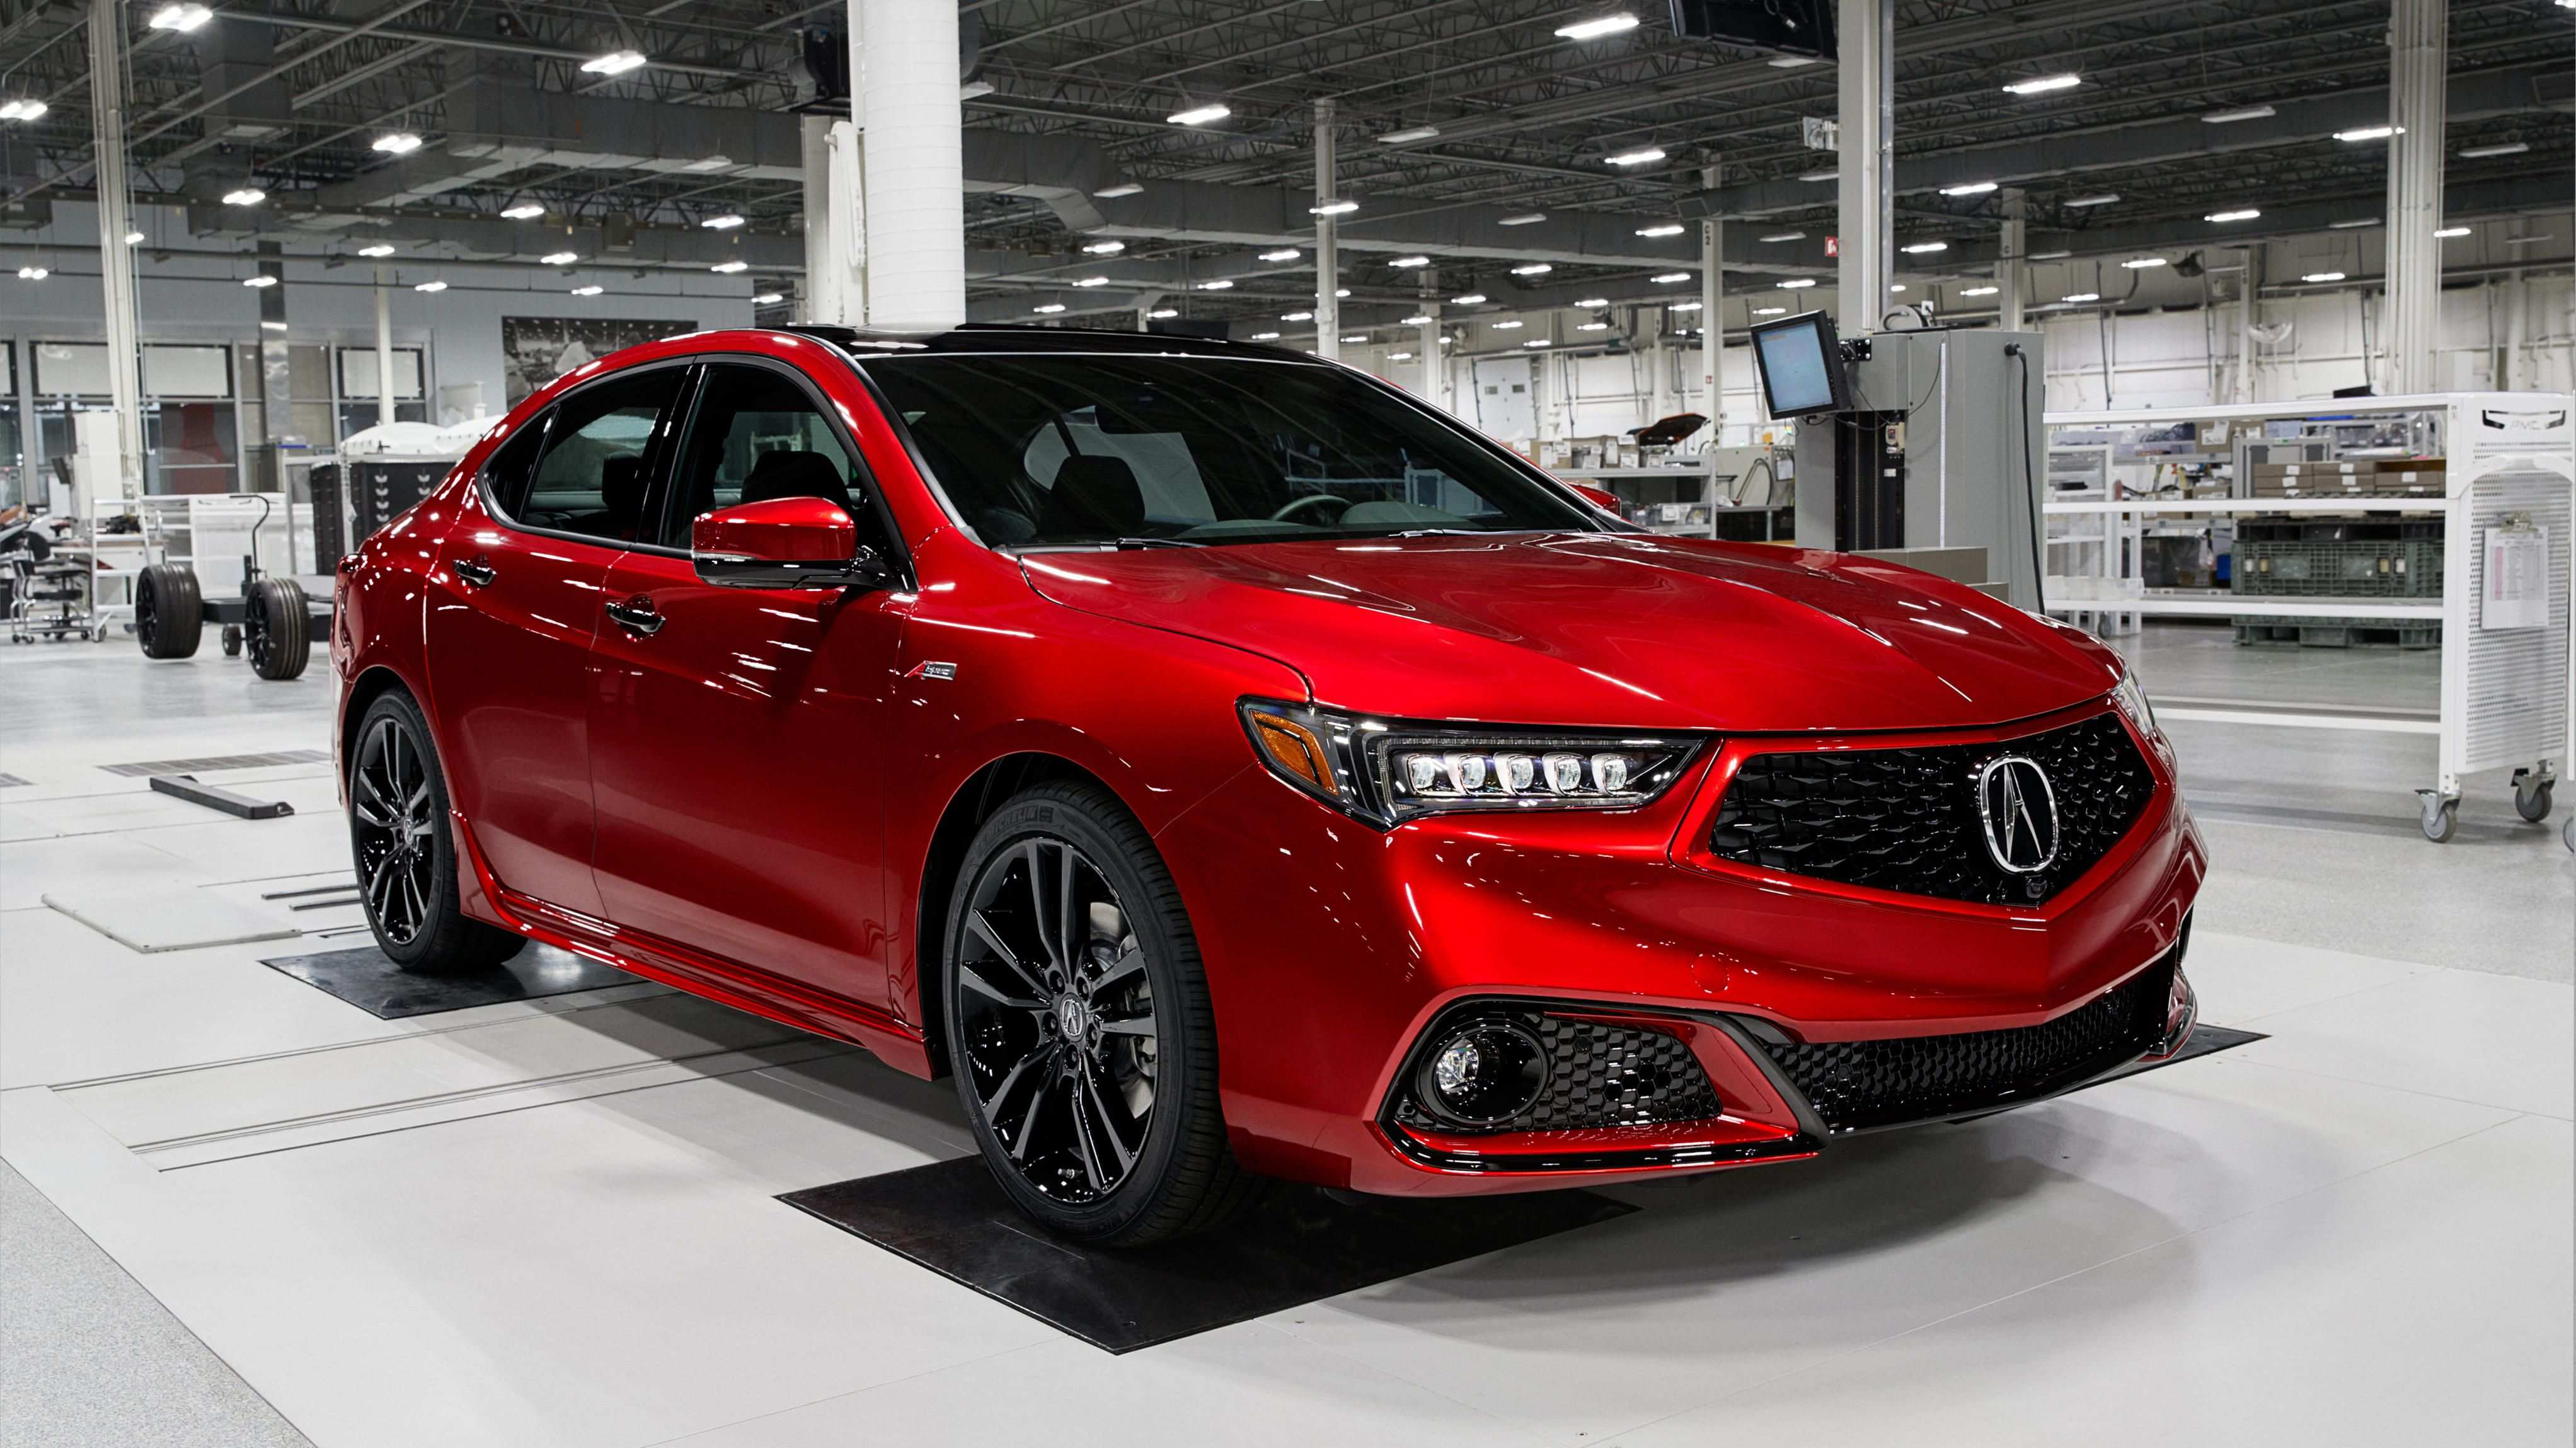 62 A 2020 Acura Tlx Type S Horsepower Research New